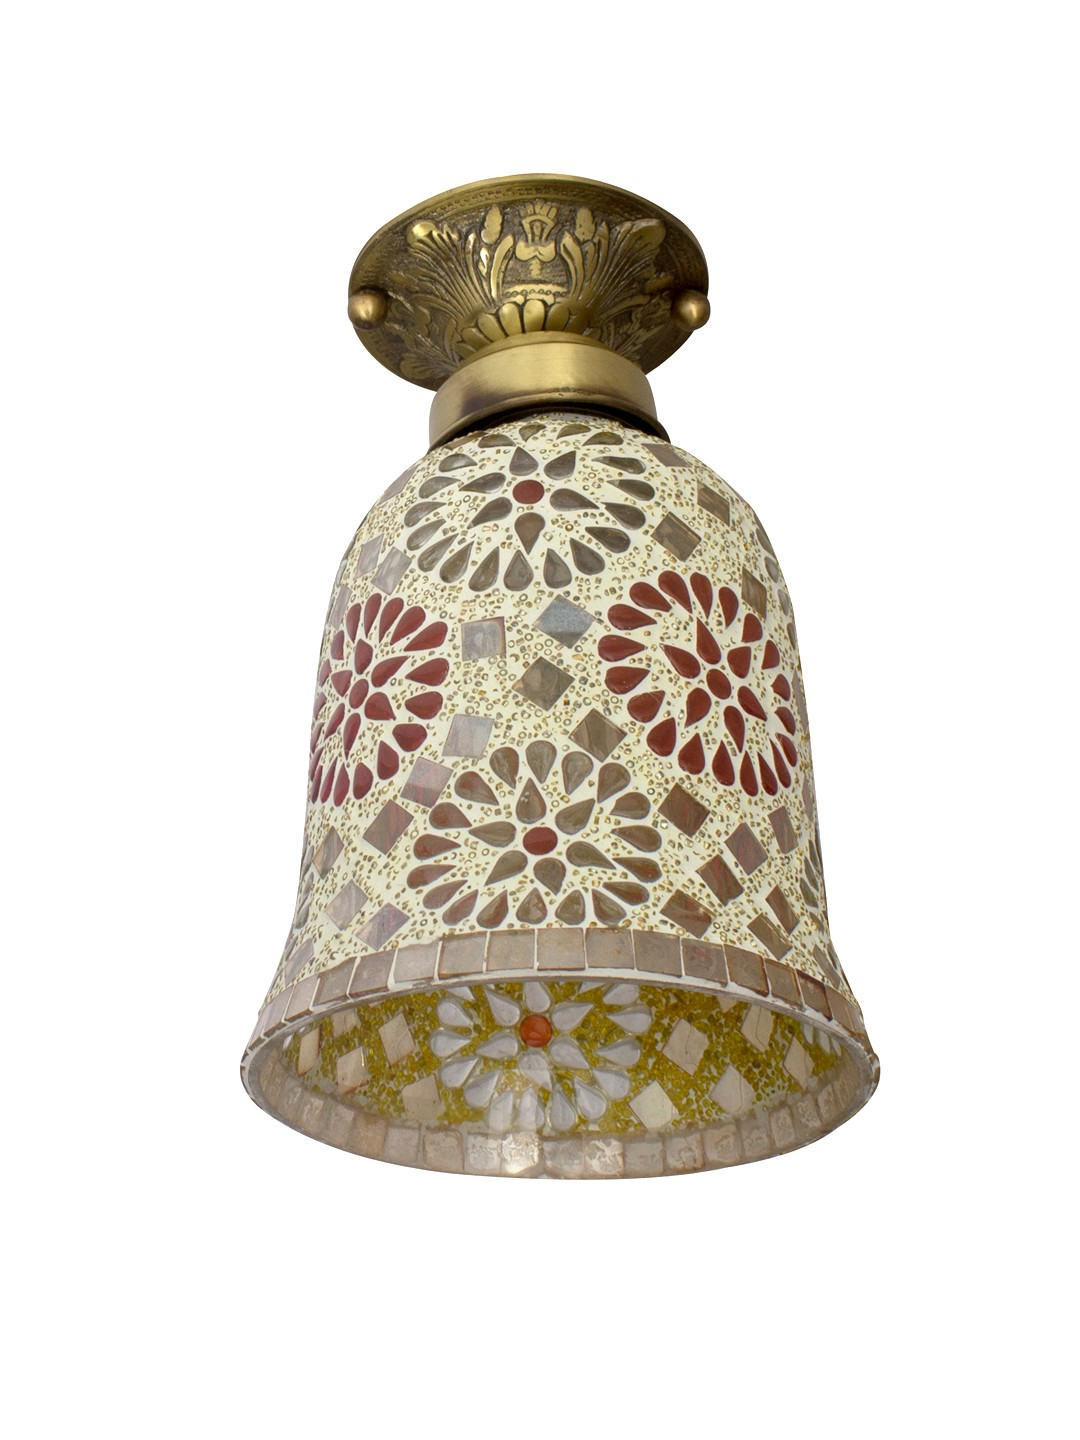 Goblet Tilak Ceiling Light Fixture